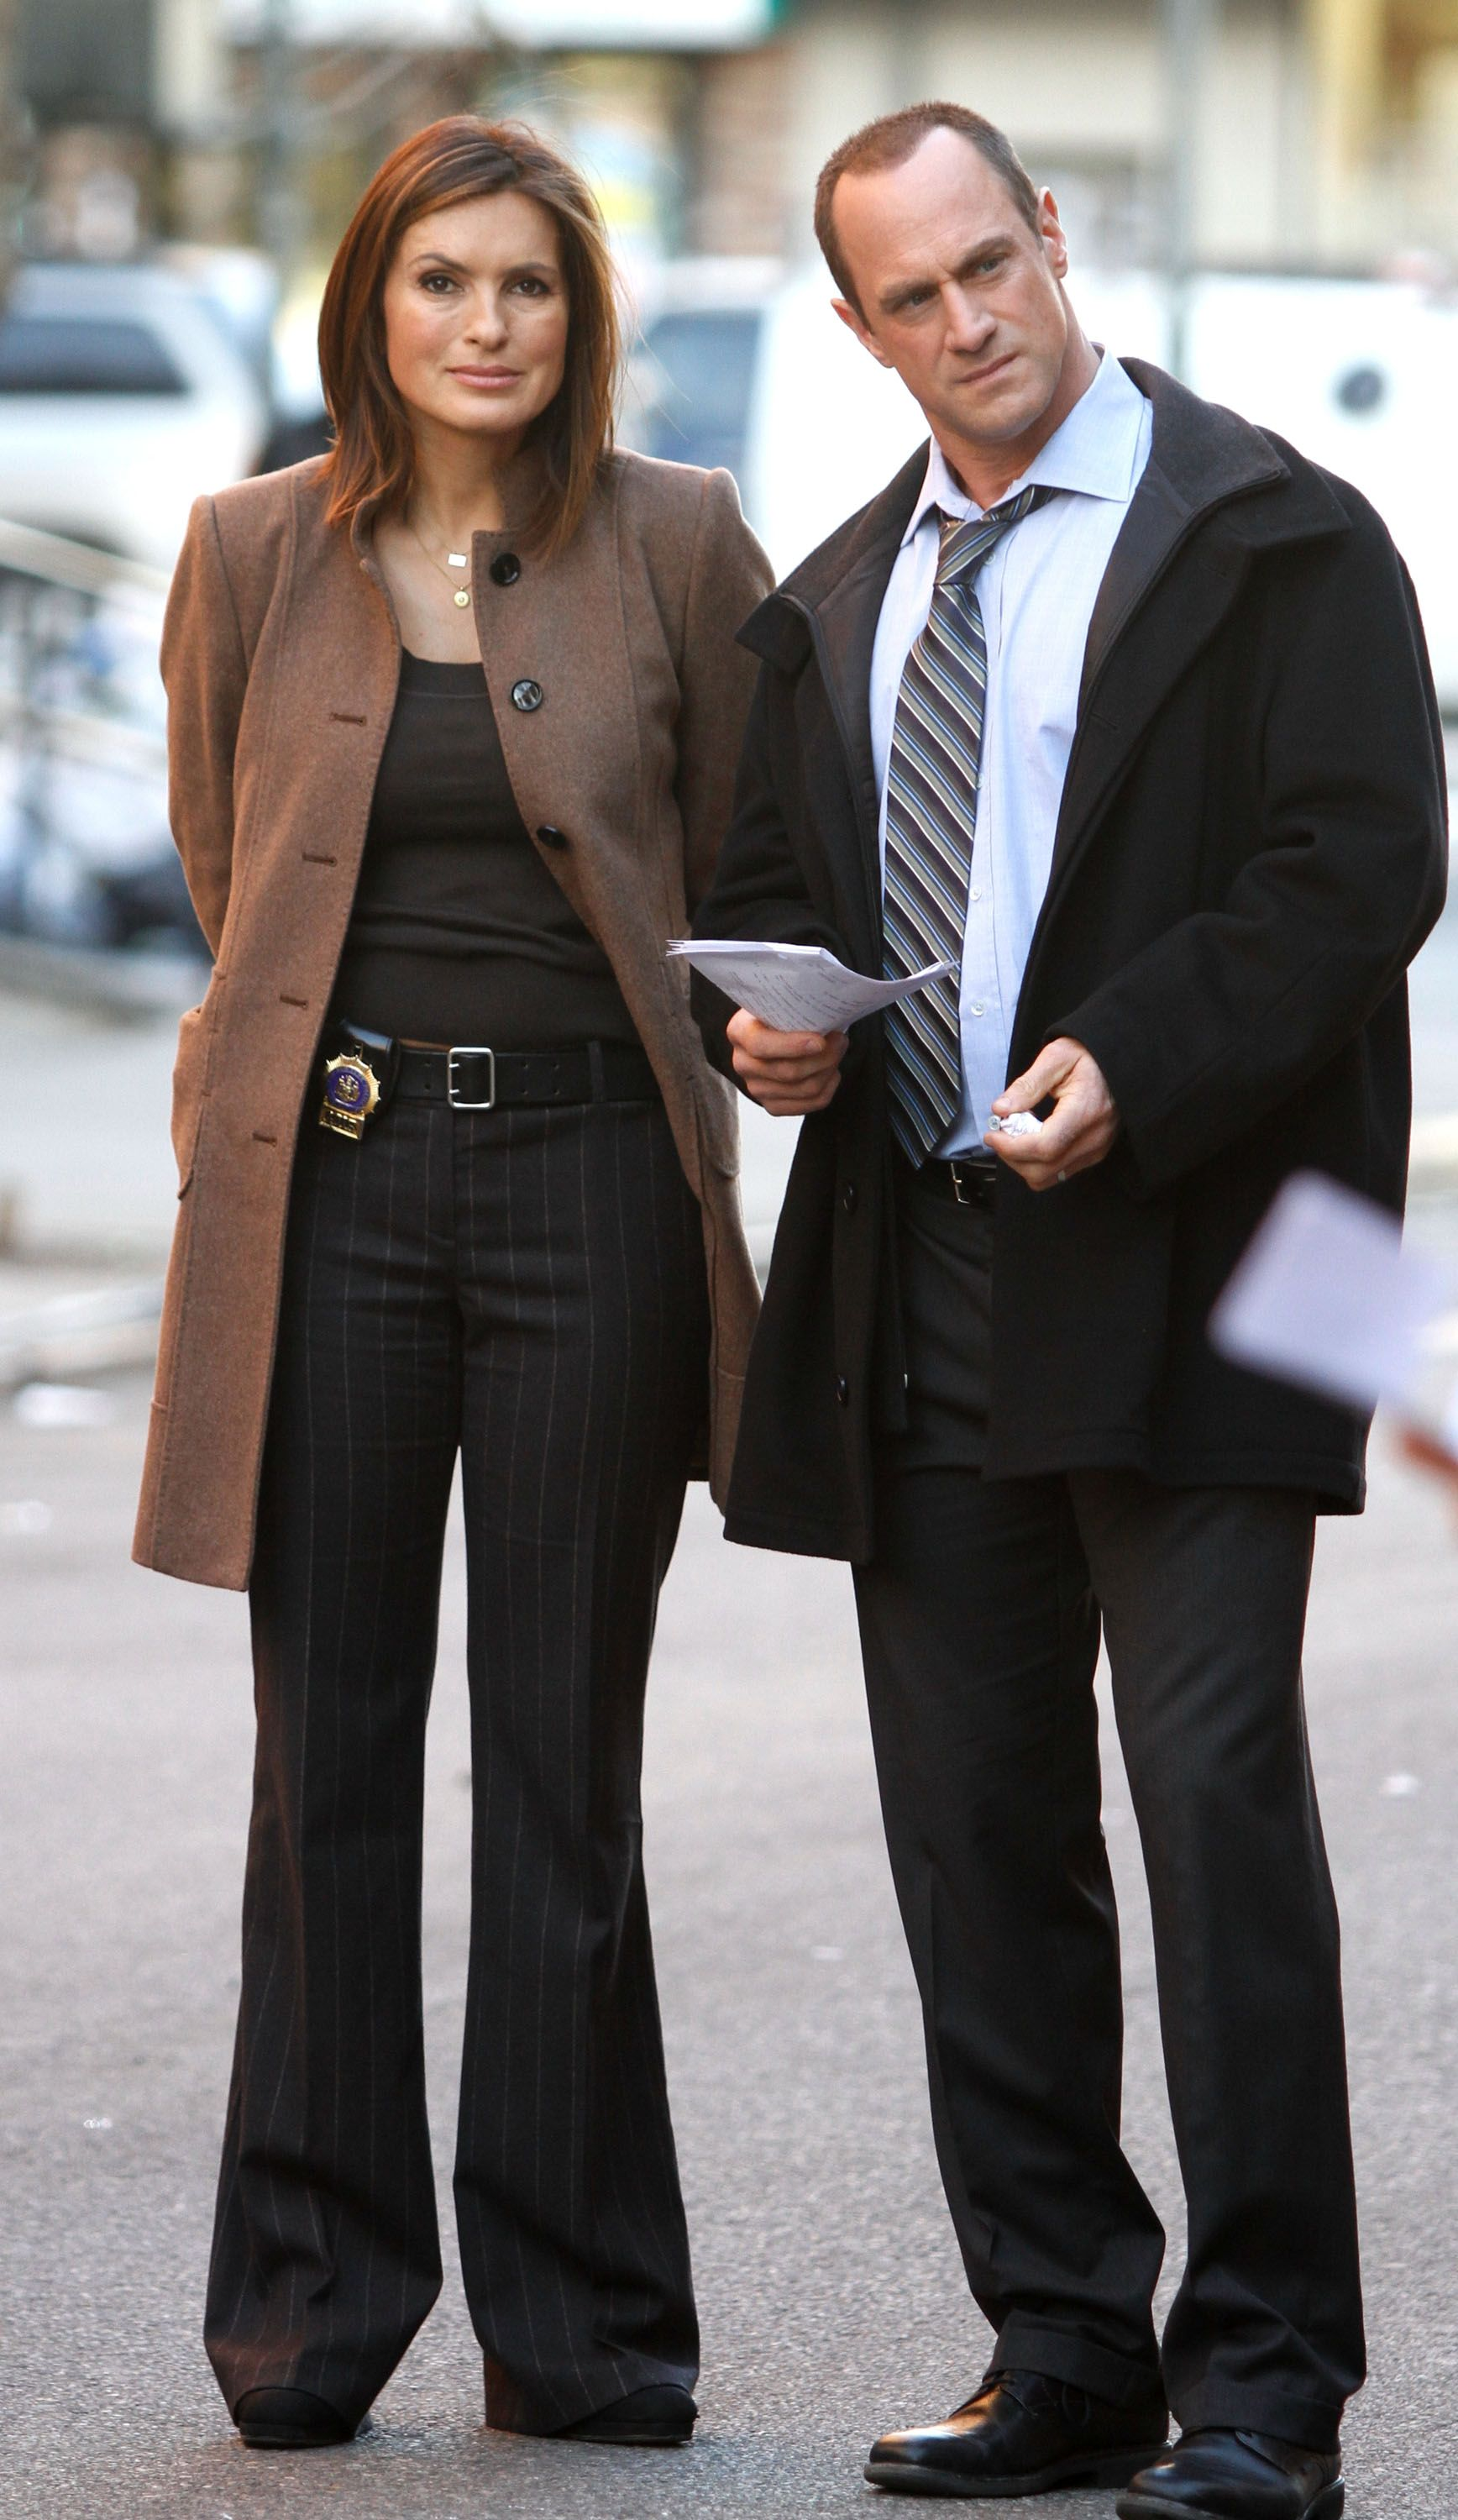 Actress Mariska Hargitay and Actor Christopher Meloni on the set on Law and Order Special Victims. Source | Photo: Getty Images